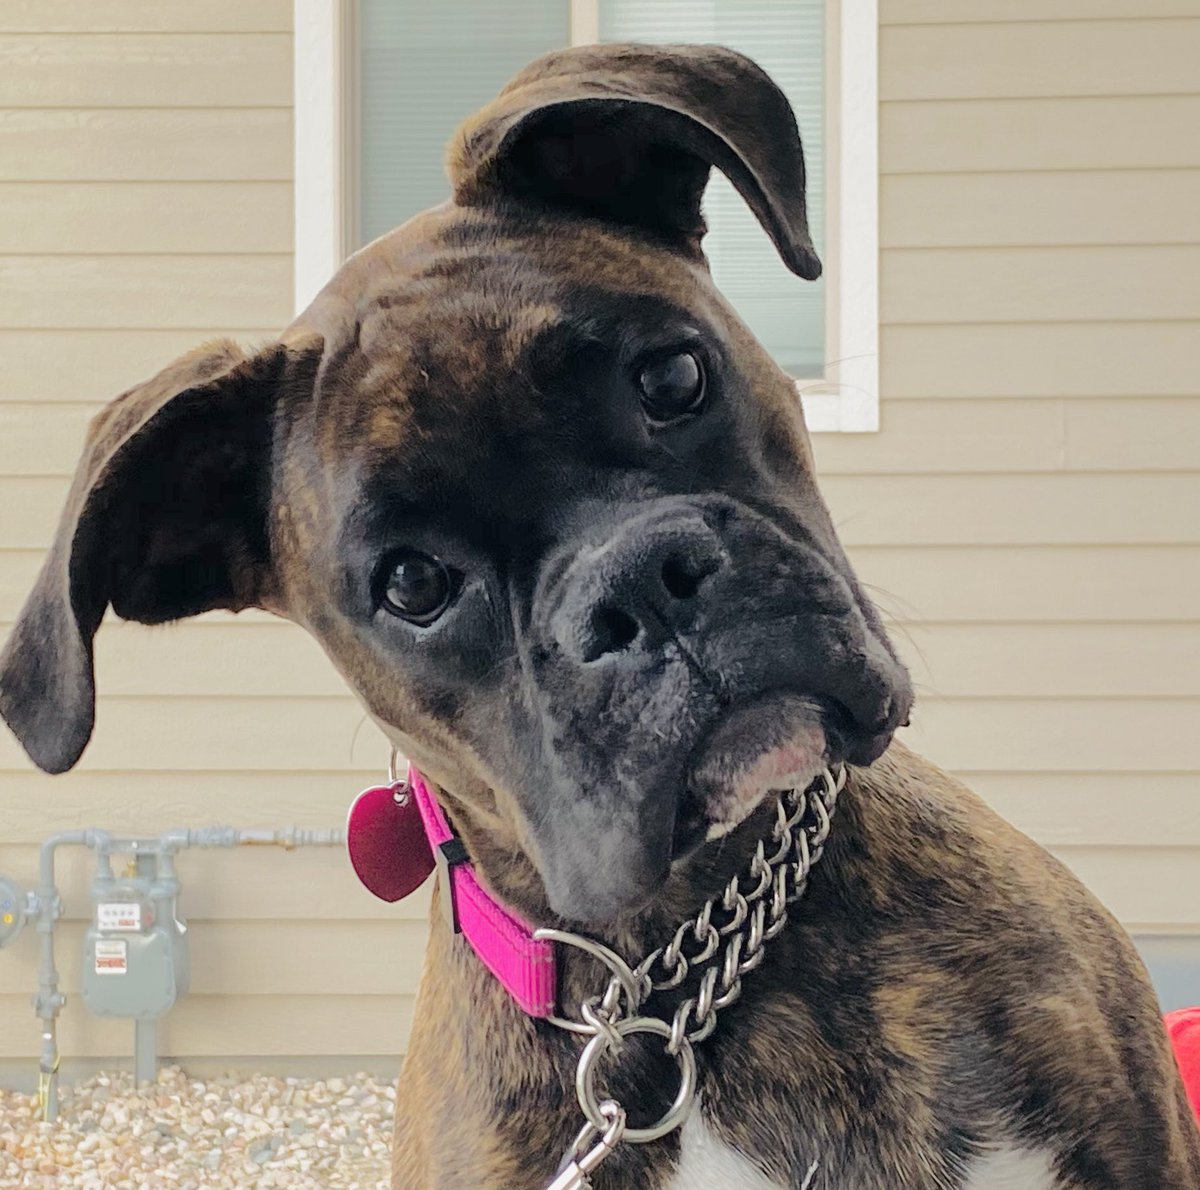 """I do not understand this word """"NO"""" you keep repeating 🧐  #TurdRuby #boxer #boxerdog #puppy #love @bluezed2003 @BoxerBond @BoxerDogUnion @dogcelebration @BoxerRescueVT @PetsNCritters"""